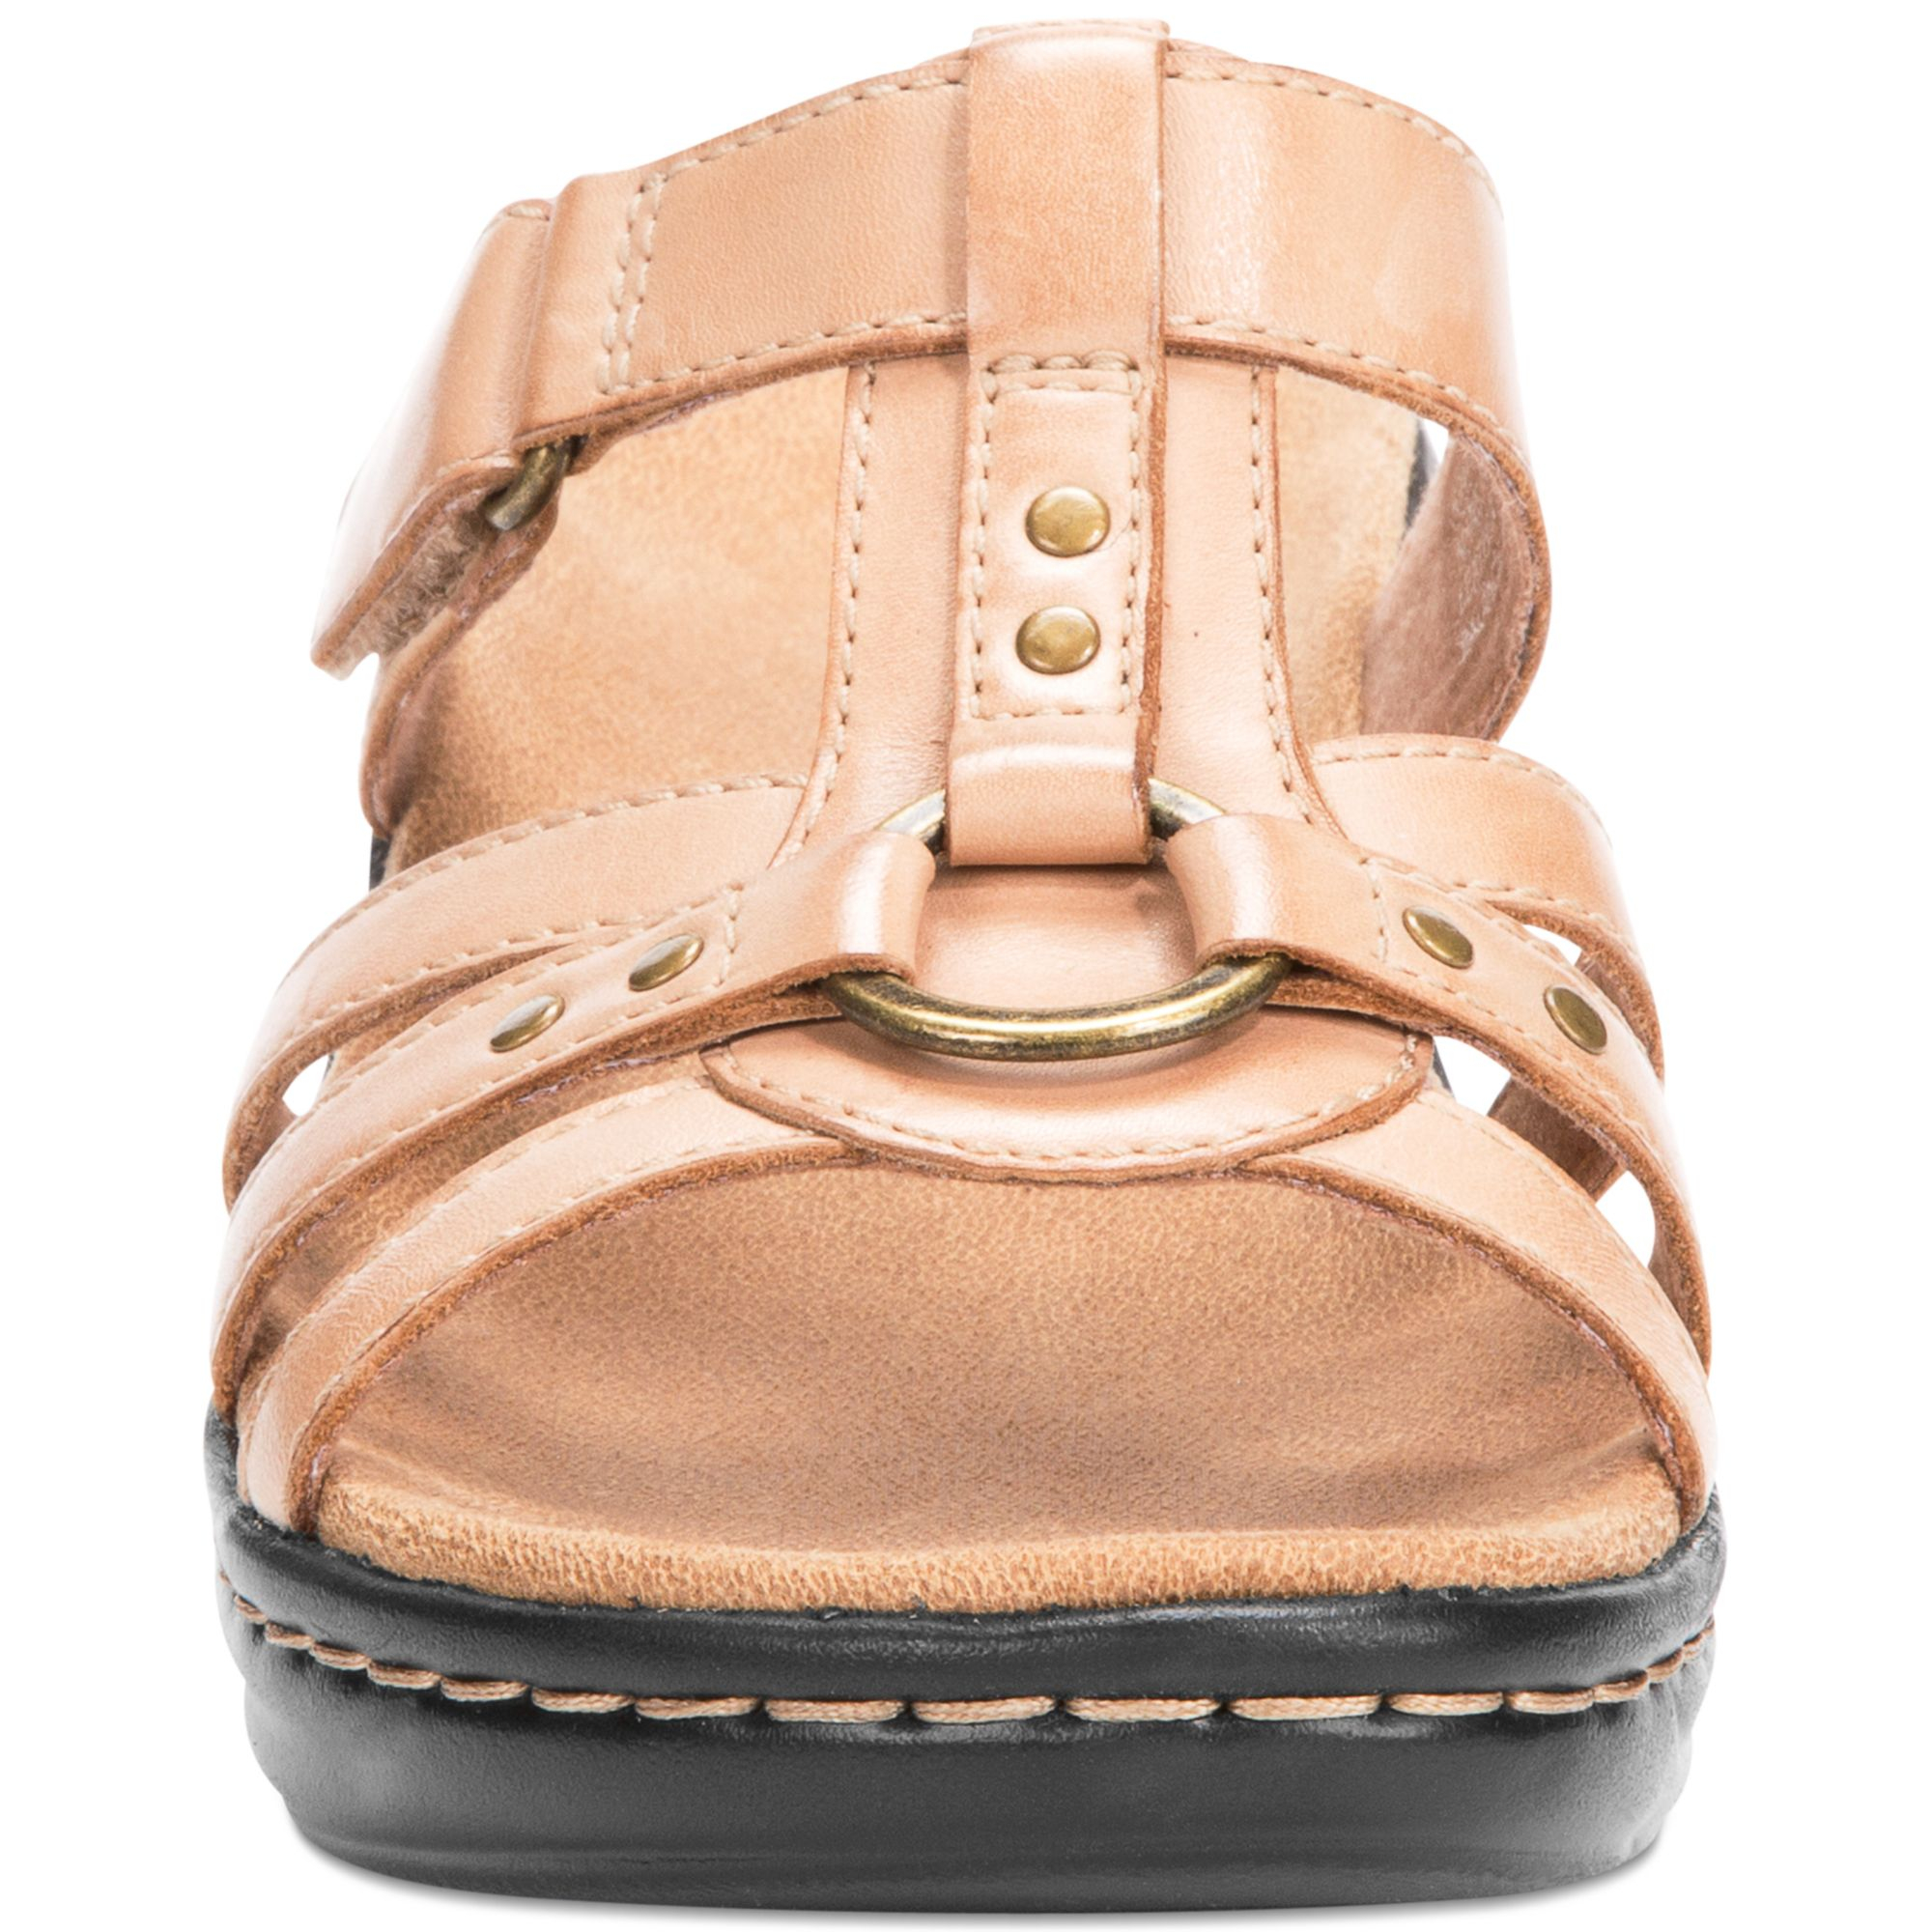 Clarks Womens Shoes Lexi Jasmine Sandals In Natural  Lyst-5640